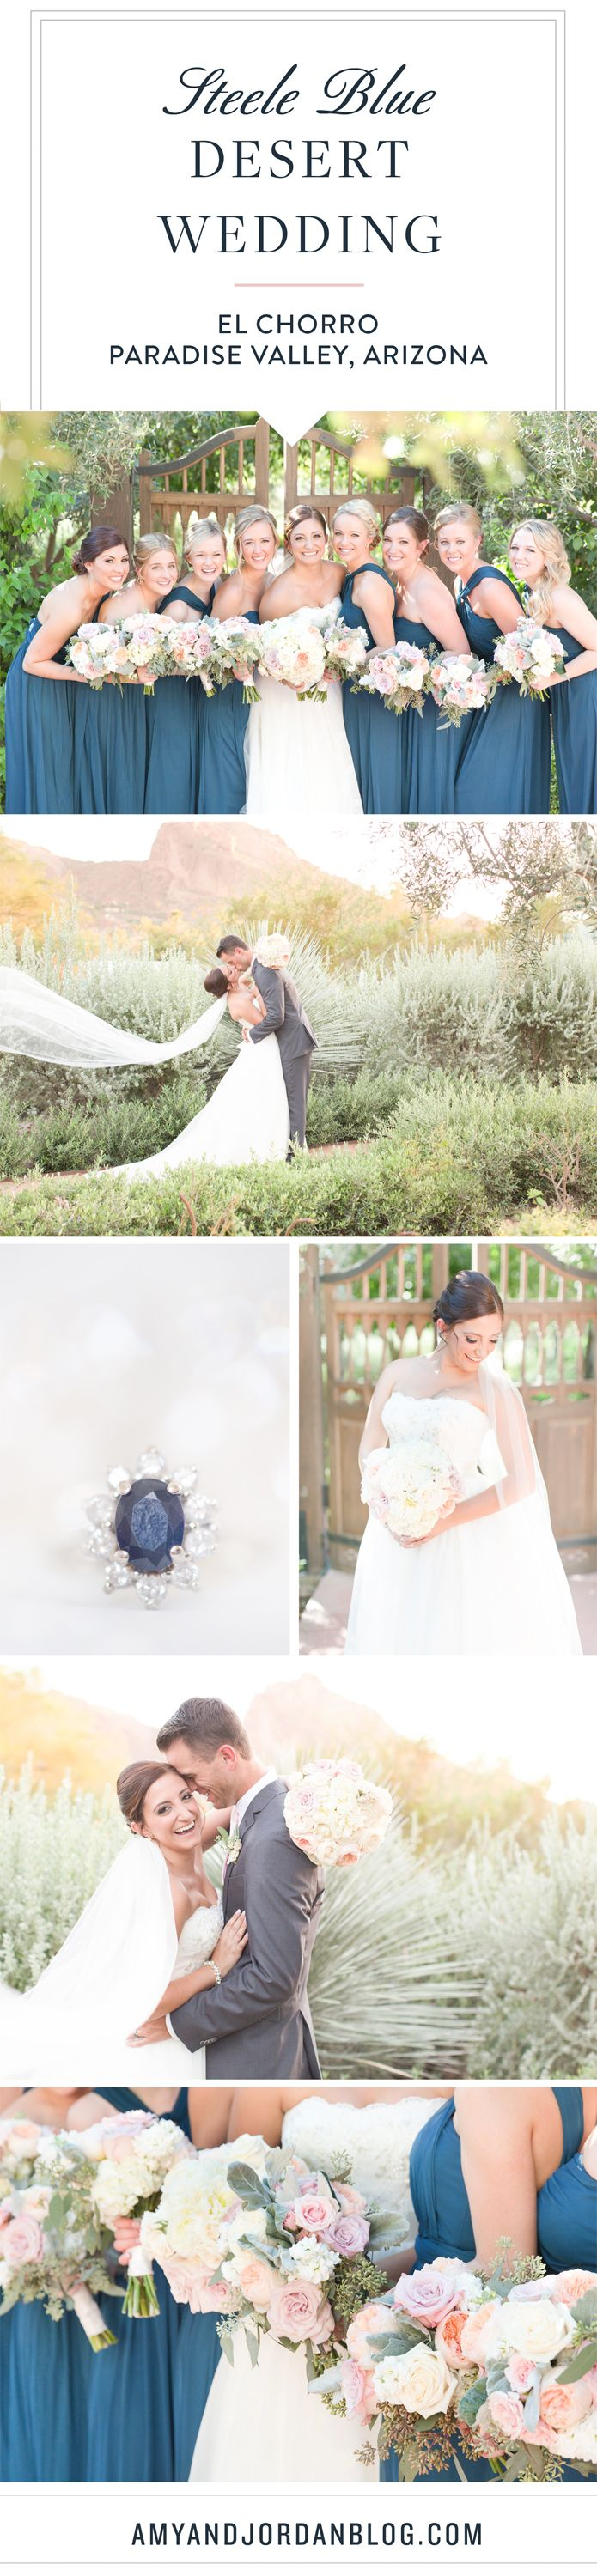 A steele blue and blush desert wedding at El Chorro Resort in Paradise Valley, Arizona. Gorgeous cathedral veil and the most precious father-daughter first look ever!!!